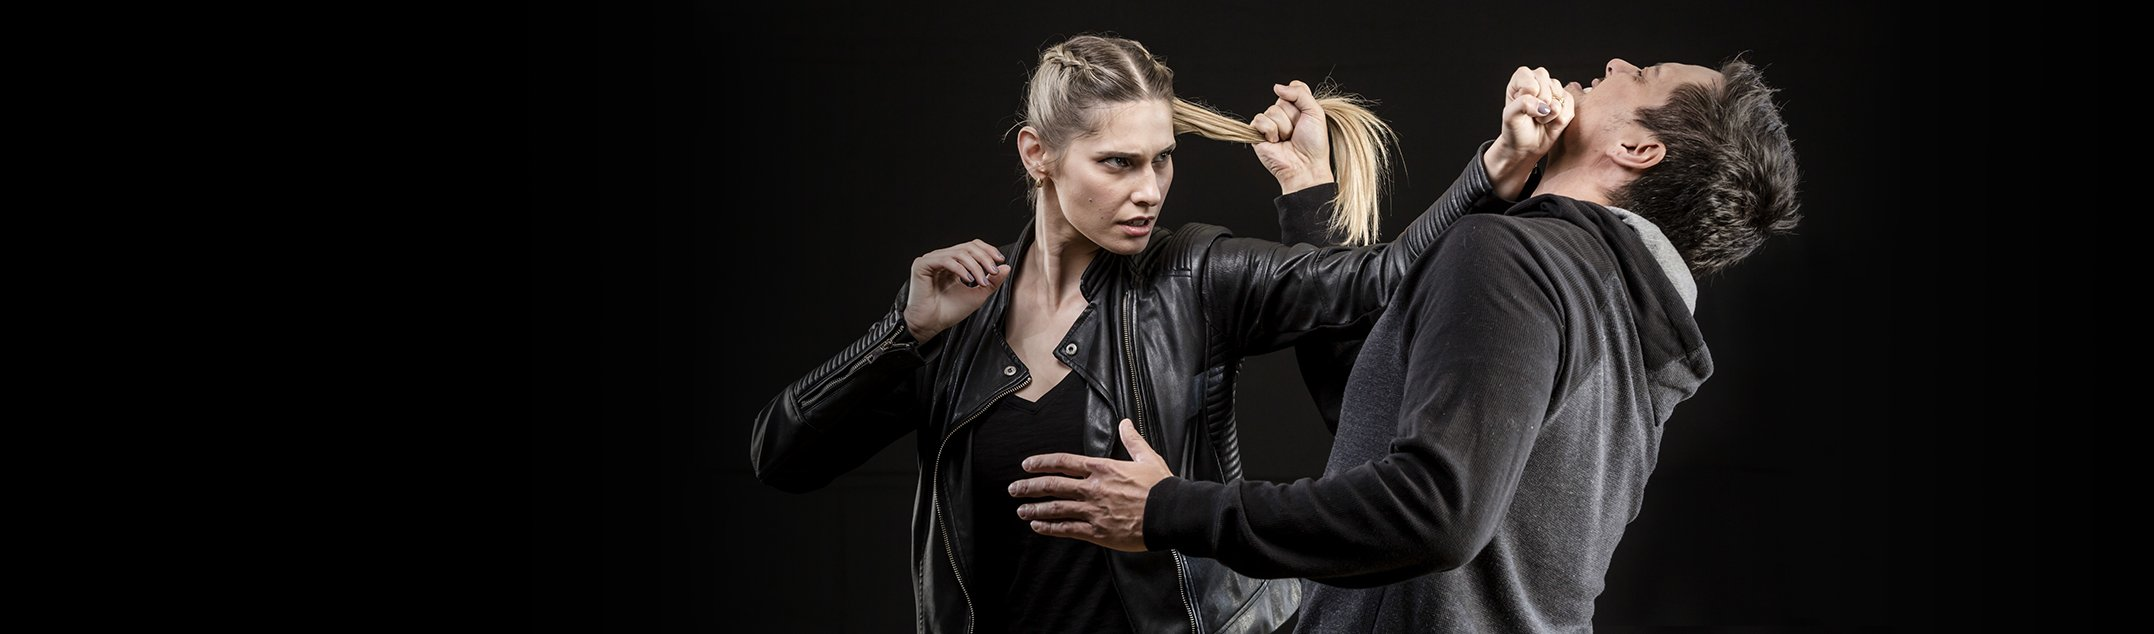 SELF-DEFENCE TECHNIQUES AND PREPARATION